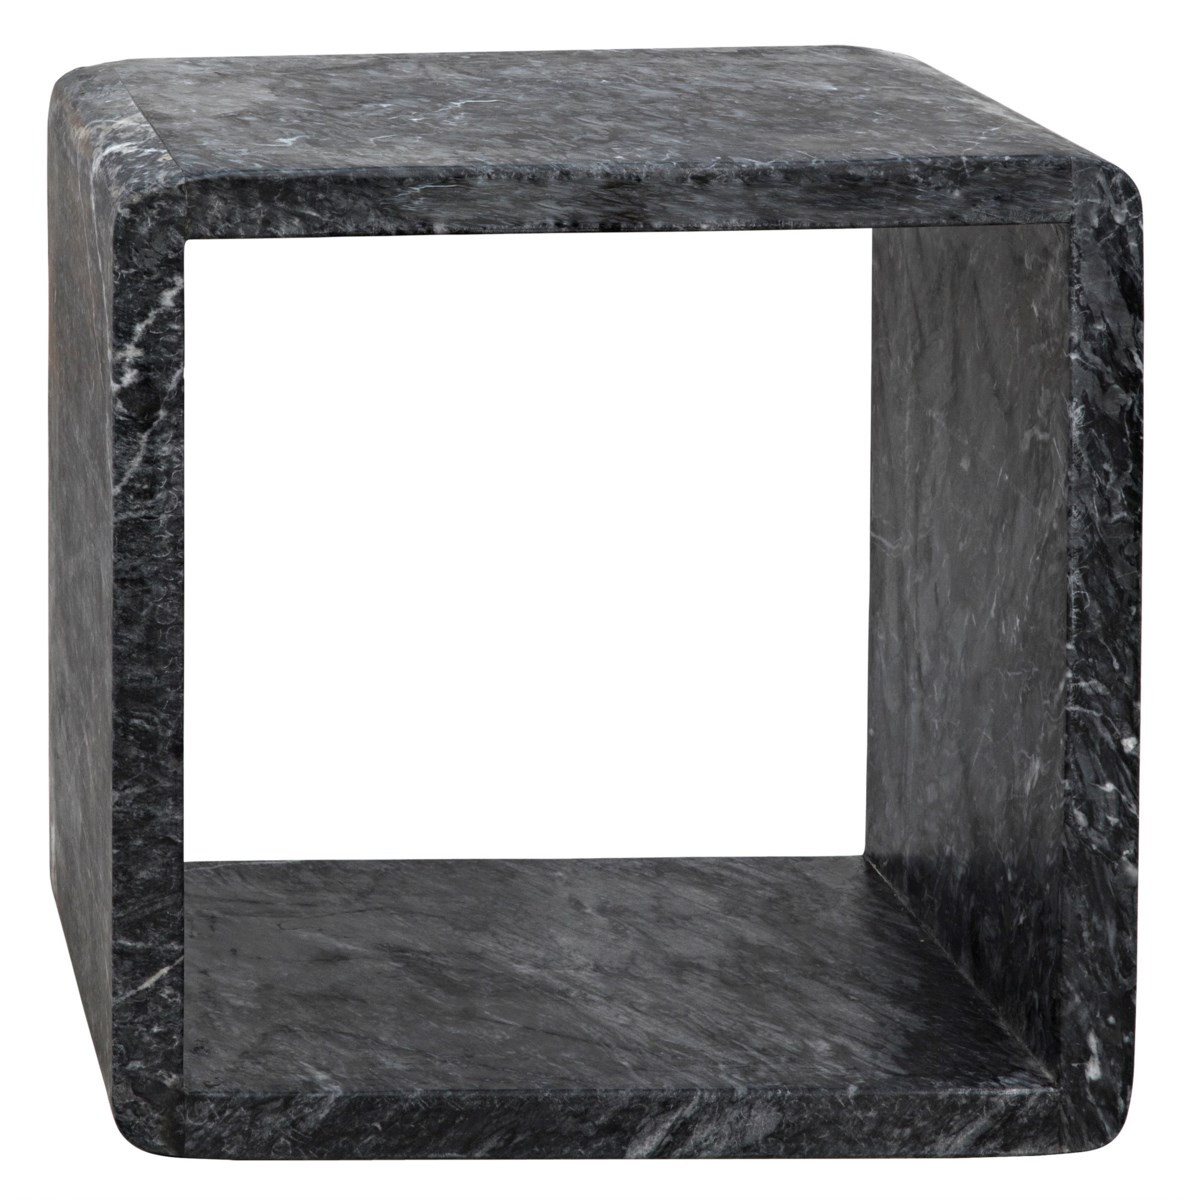 Foundation Side Table, Small, Black Marble